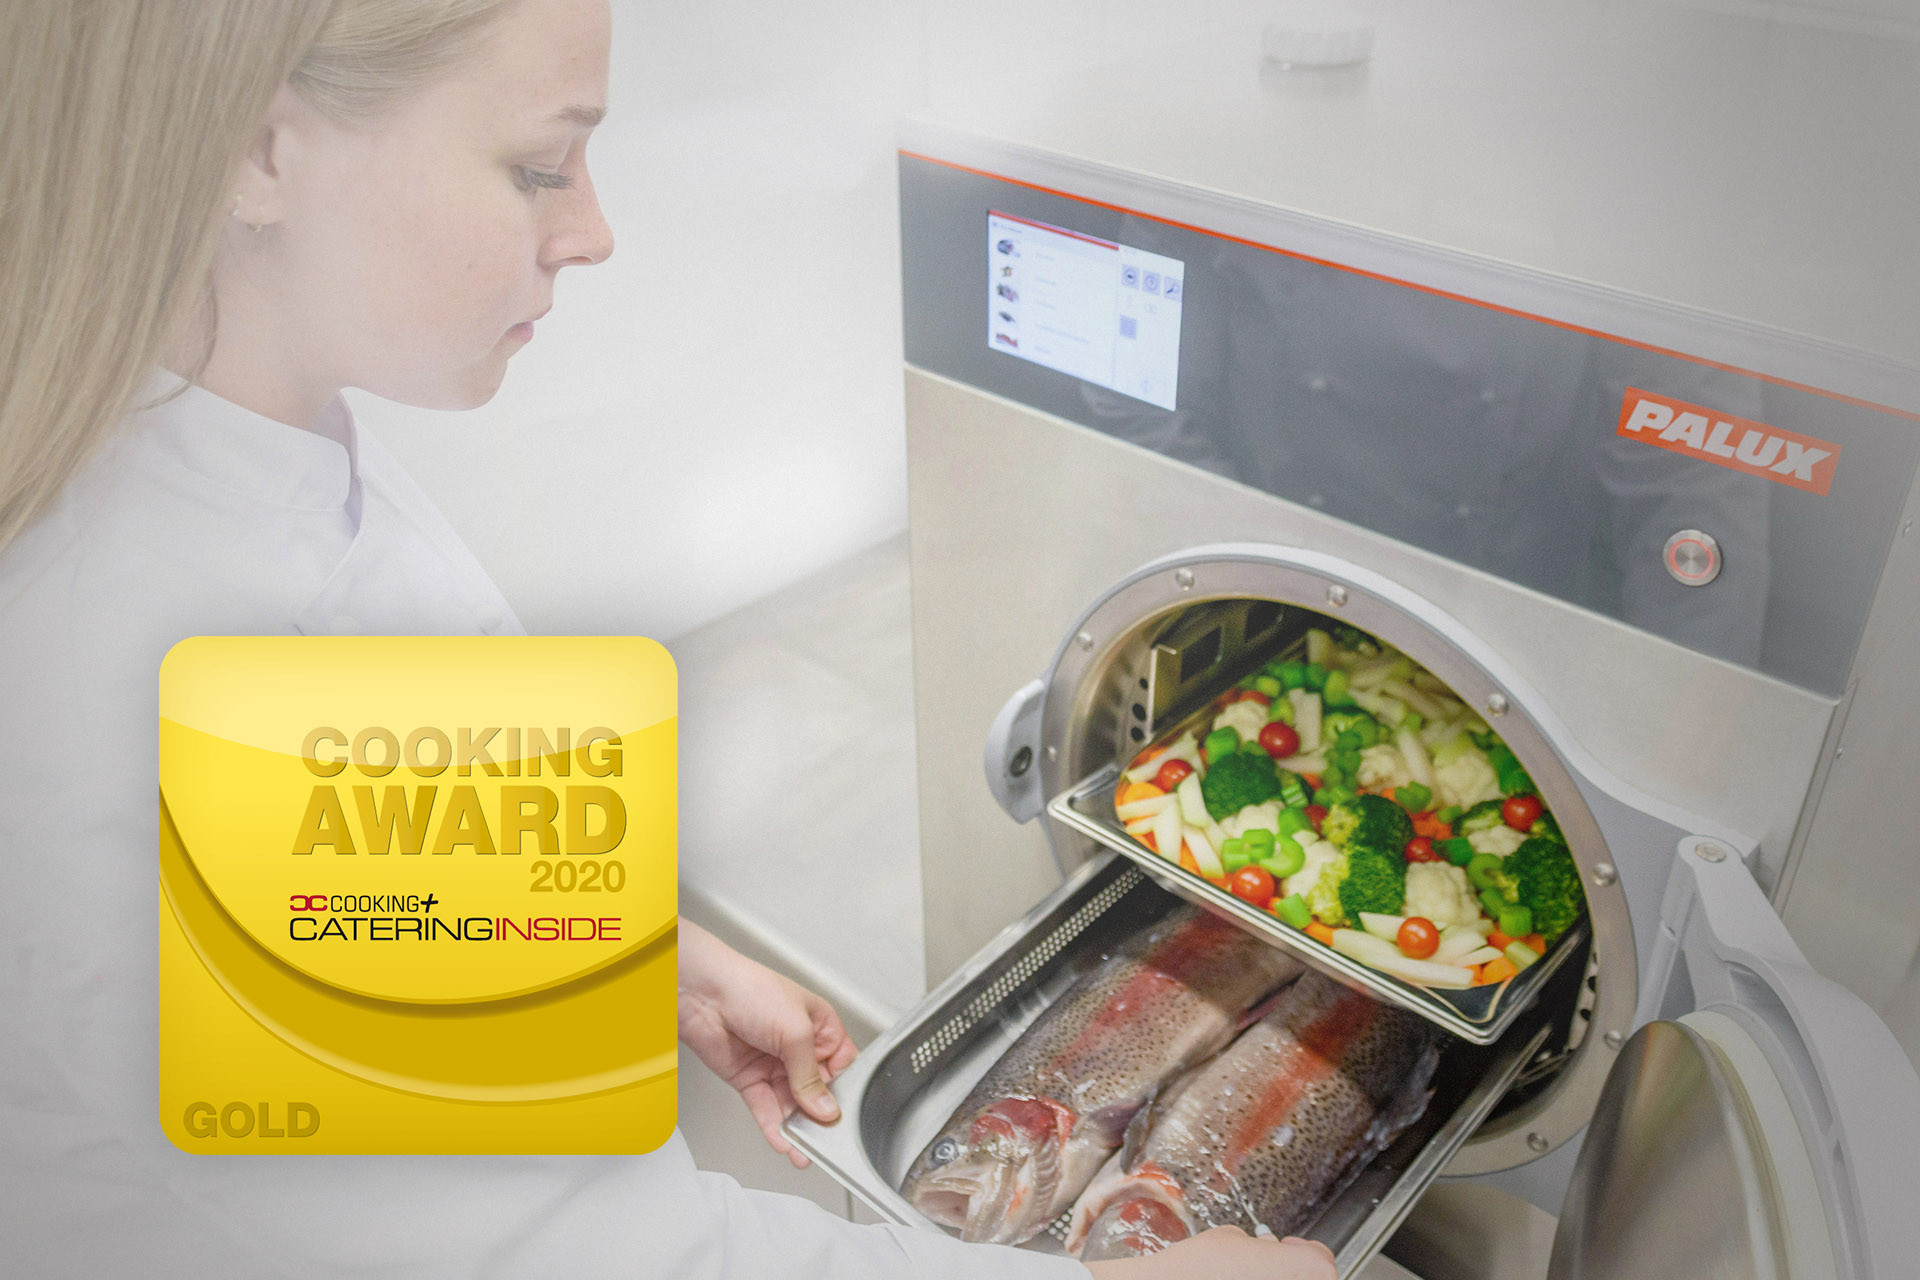 PALUX Pressure Steamer: Gold at the Cooking Award 2020